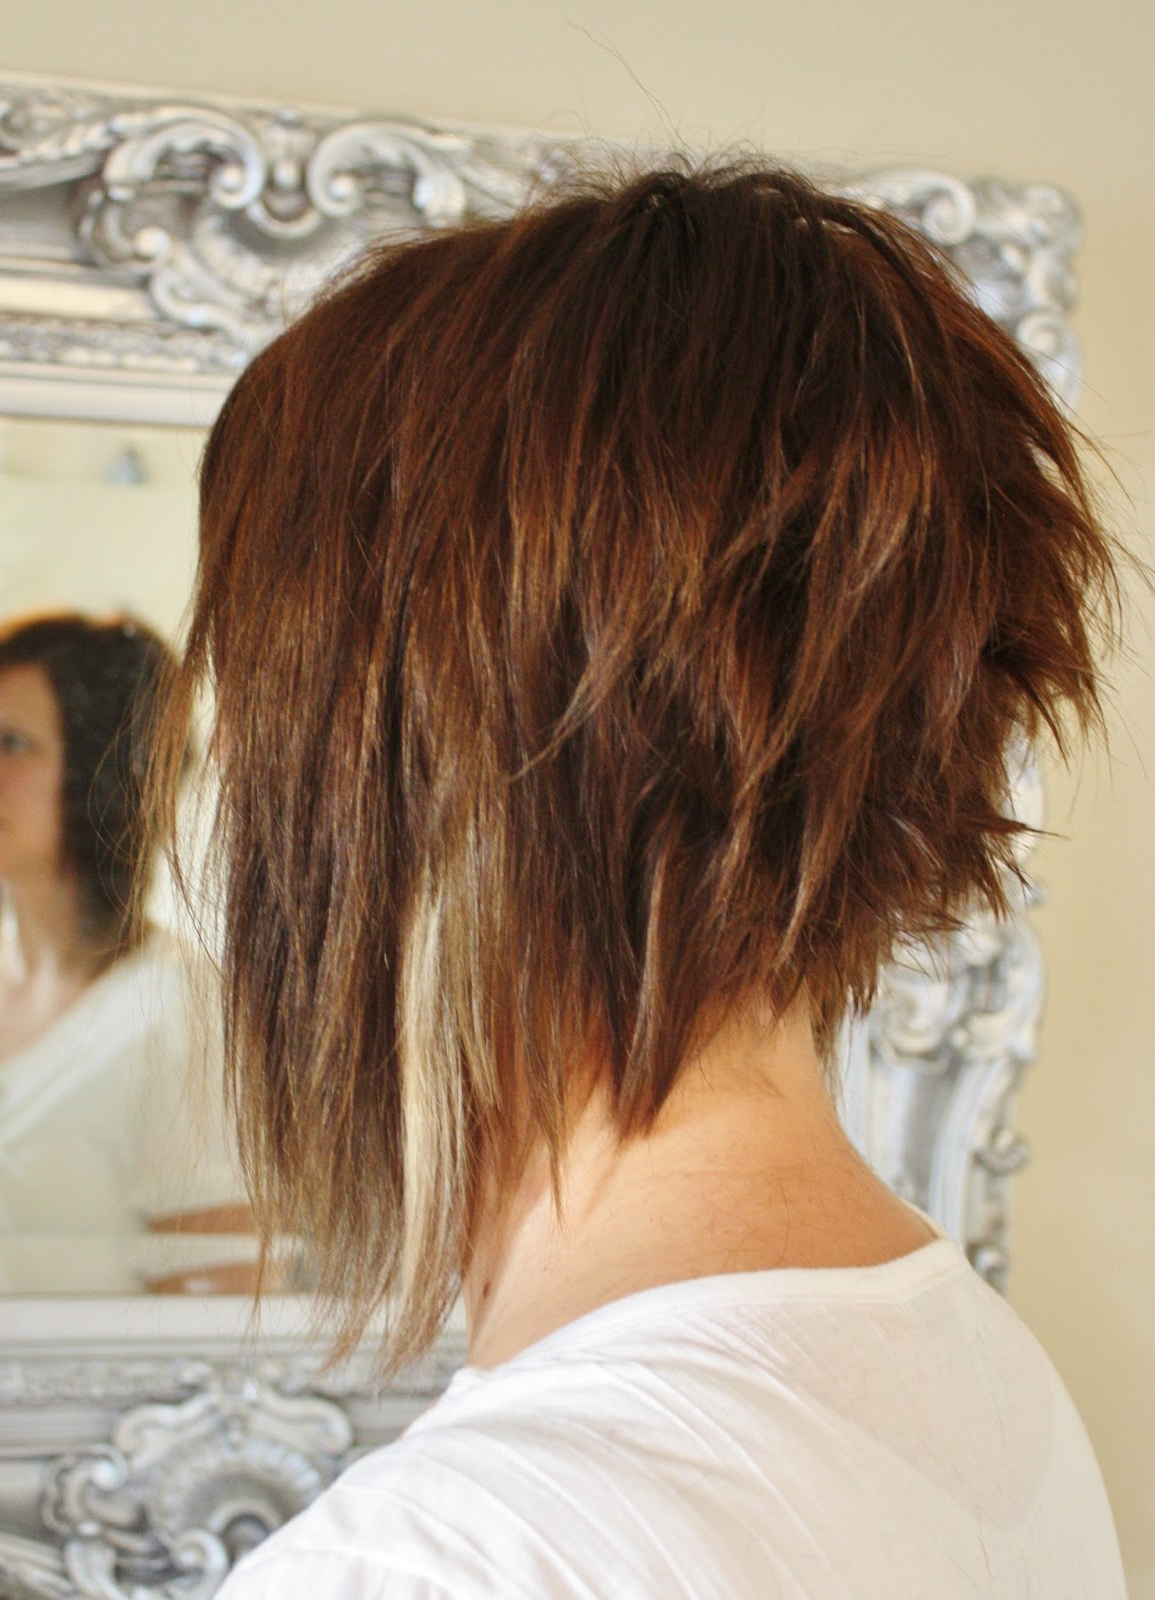 Dramatic Short Hairstyles – Hairstyles Ideas Pertaining To Dramatic Short Hairstyles (Gallery 12 of 25)